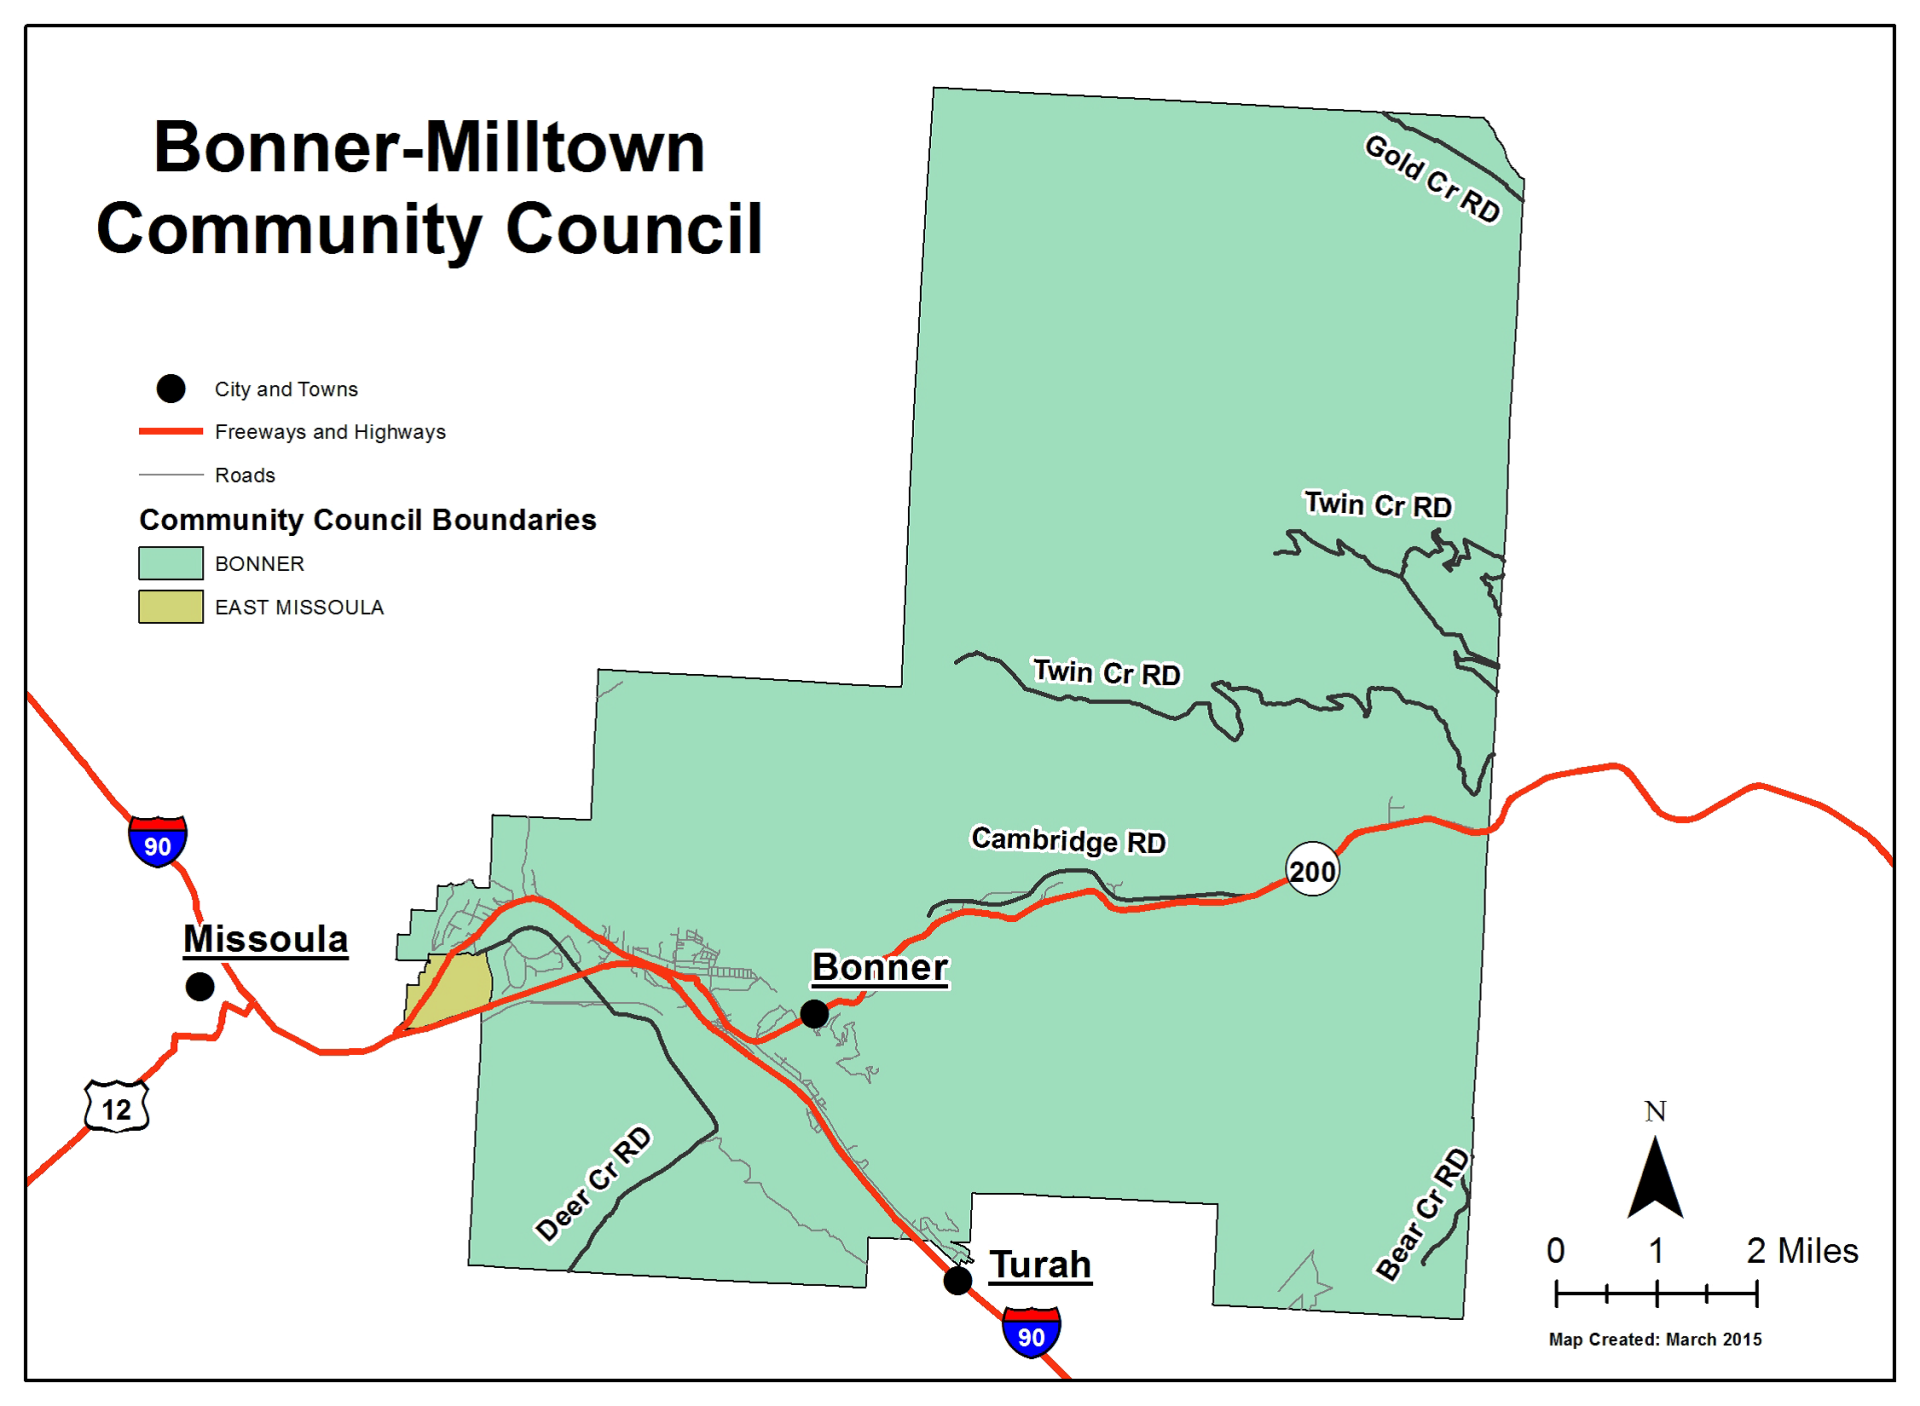 Bonner-Milltown Community Council